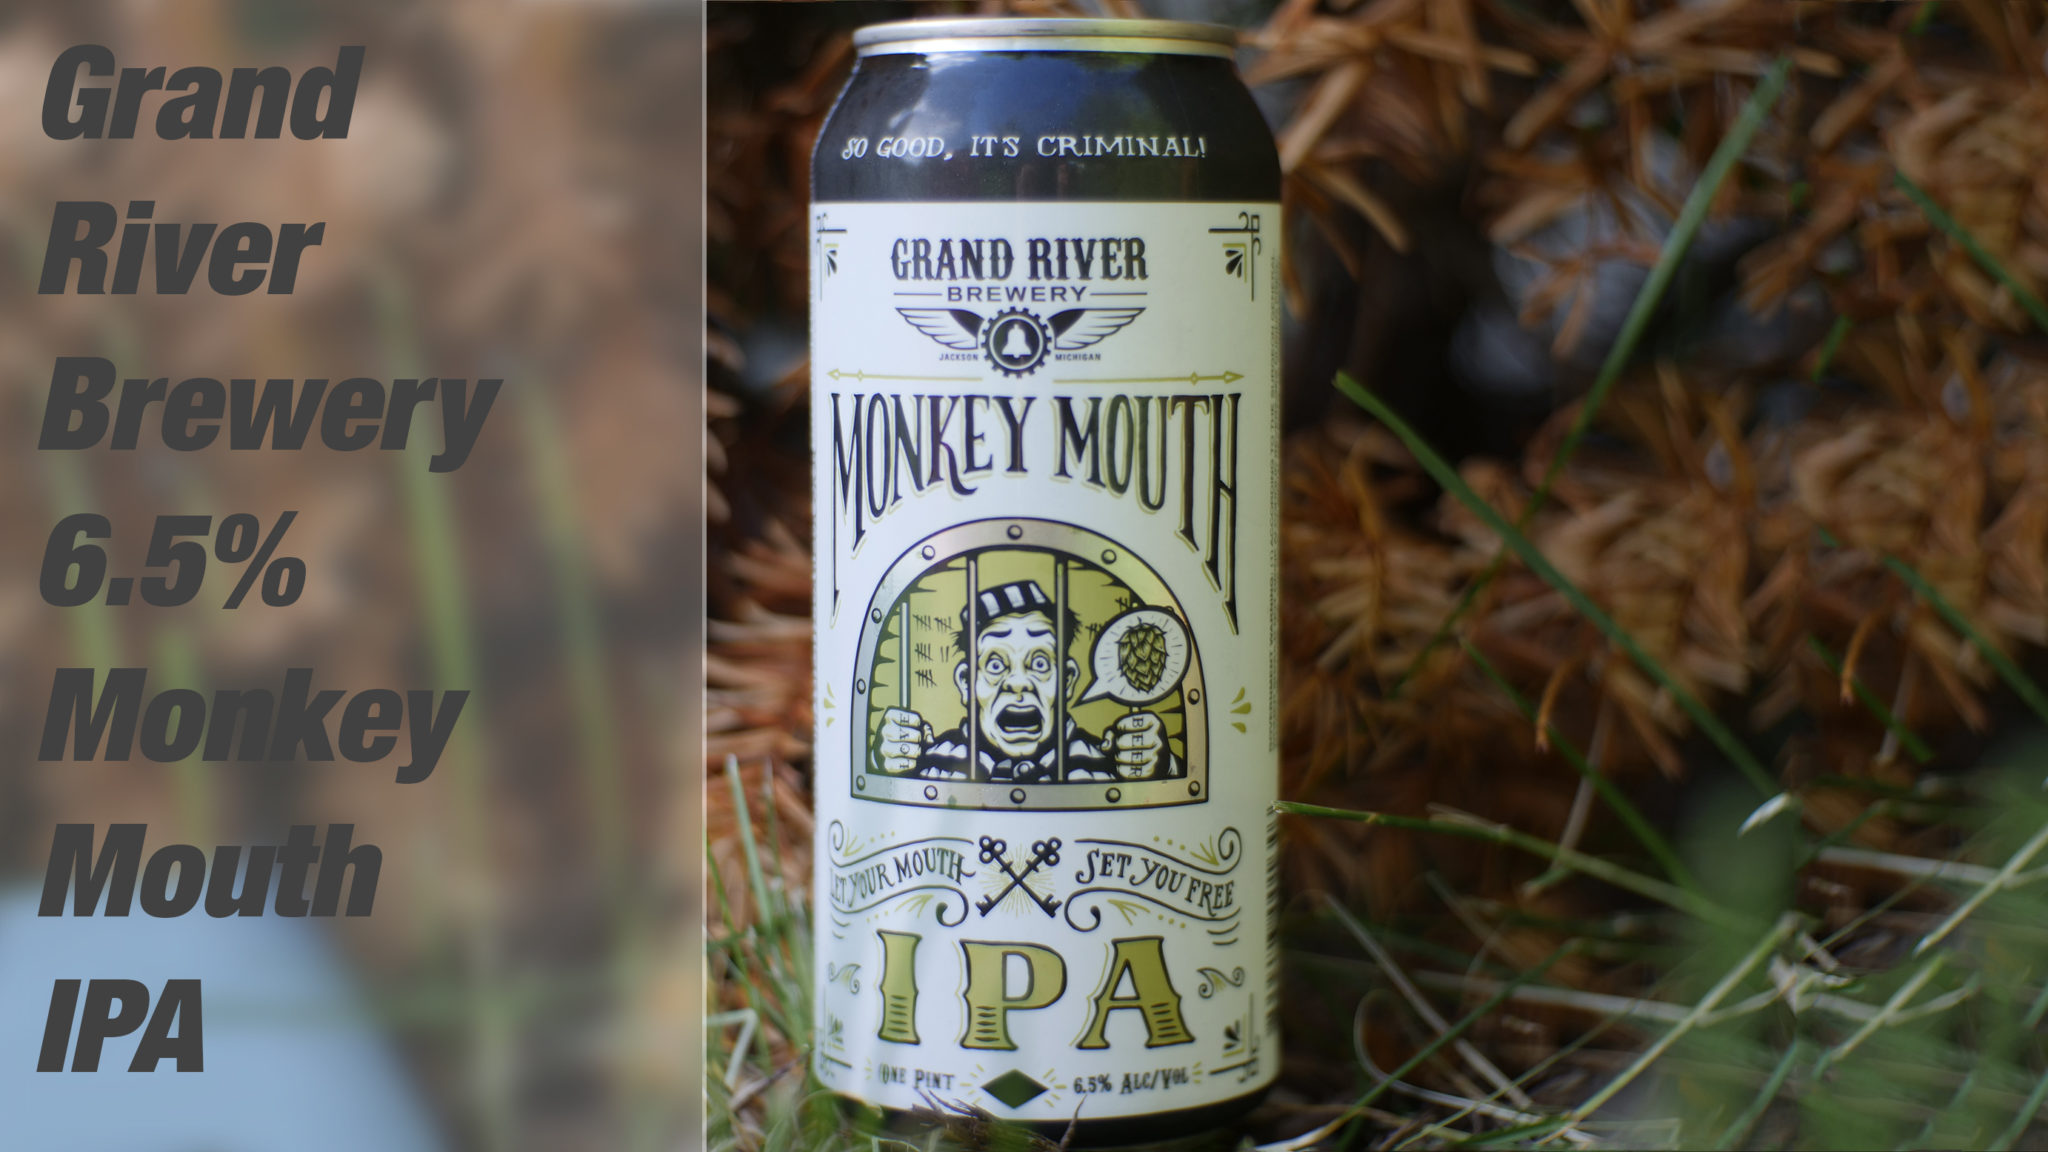 Grand River Brewery's Monkey Mouth IPA Review